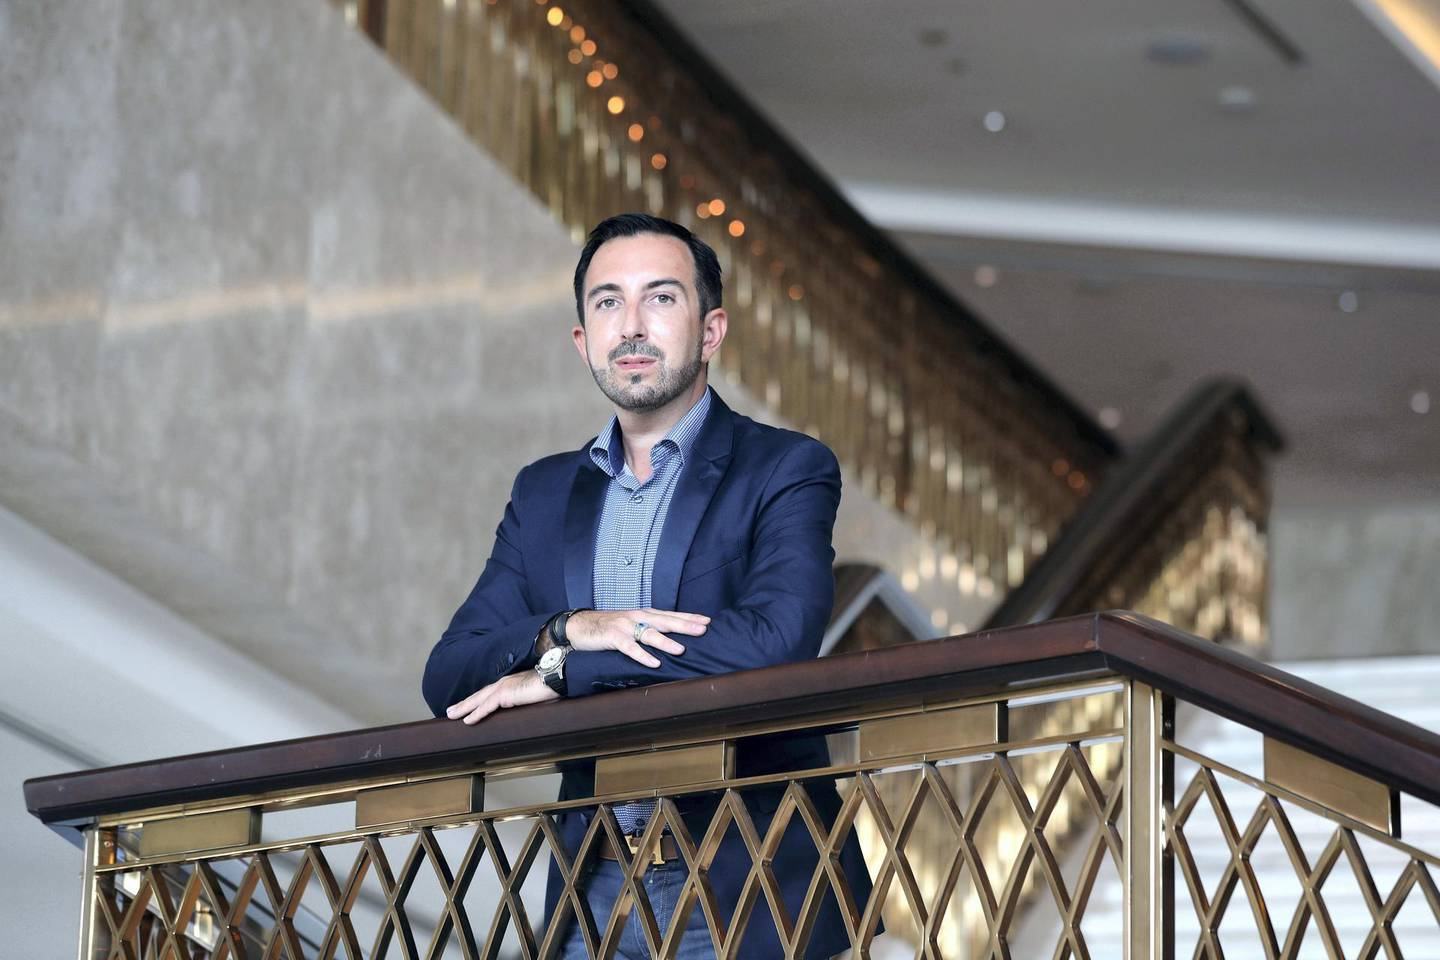 Dubai, United Arab Emirates - Reporter: Melanie Swan. Business. Money and Me. Portrait of Count Oliver of Wurmbrand-Stuppach, the man behind The Ambassadors Club, and a nobleman now based in Dubai. Wednesday, October 7th, 2020. Dubai. Chris Whiteoak / The National